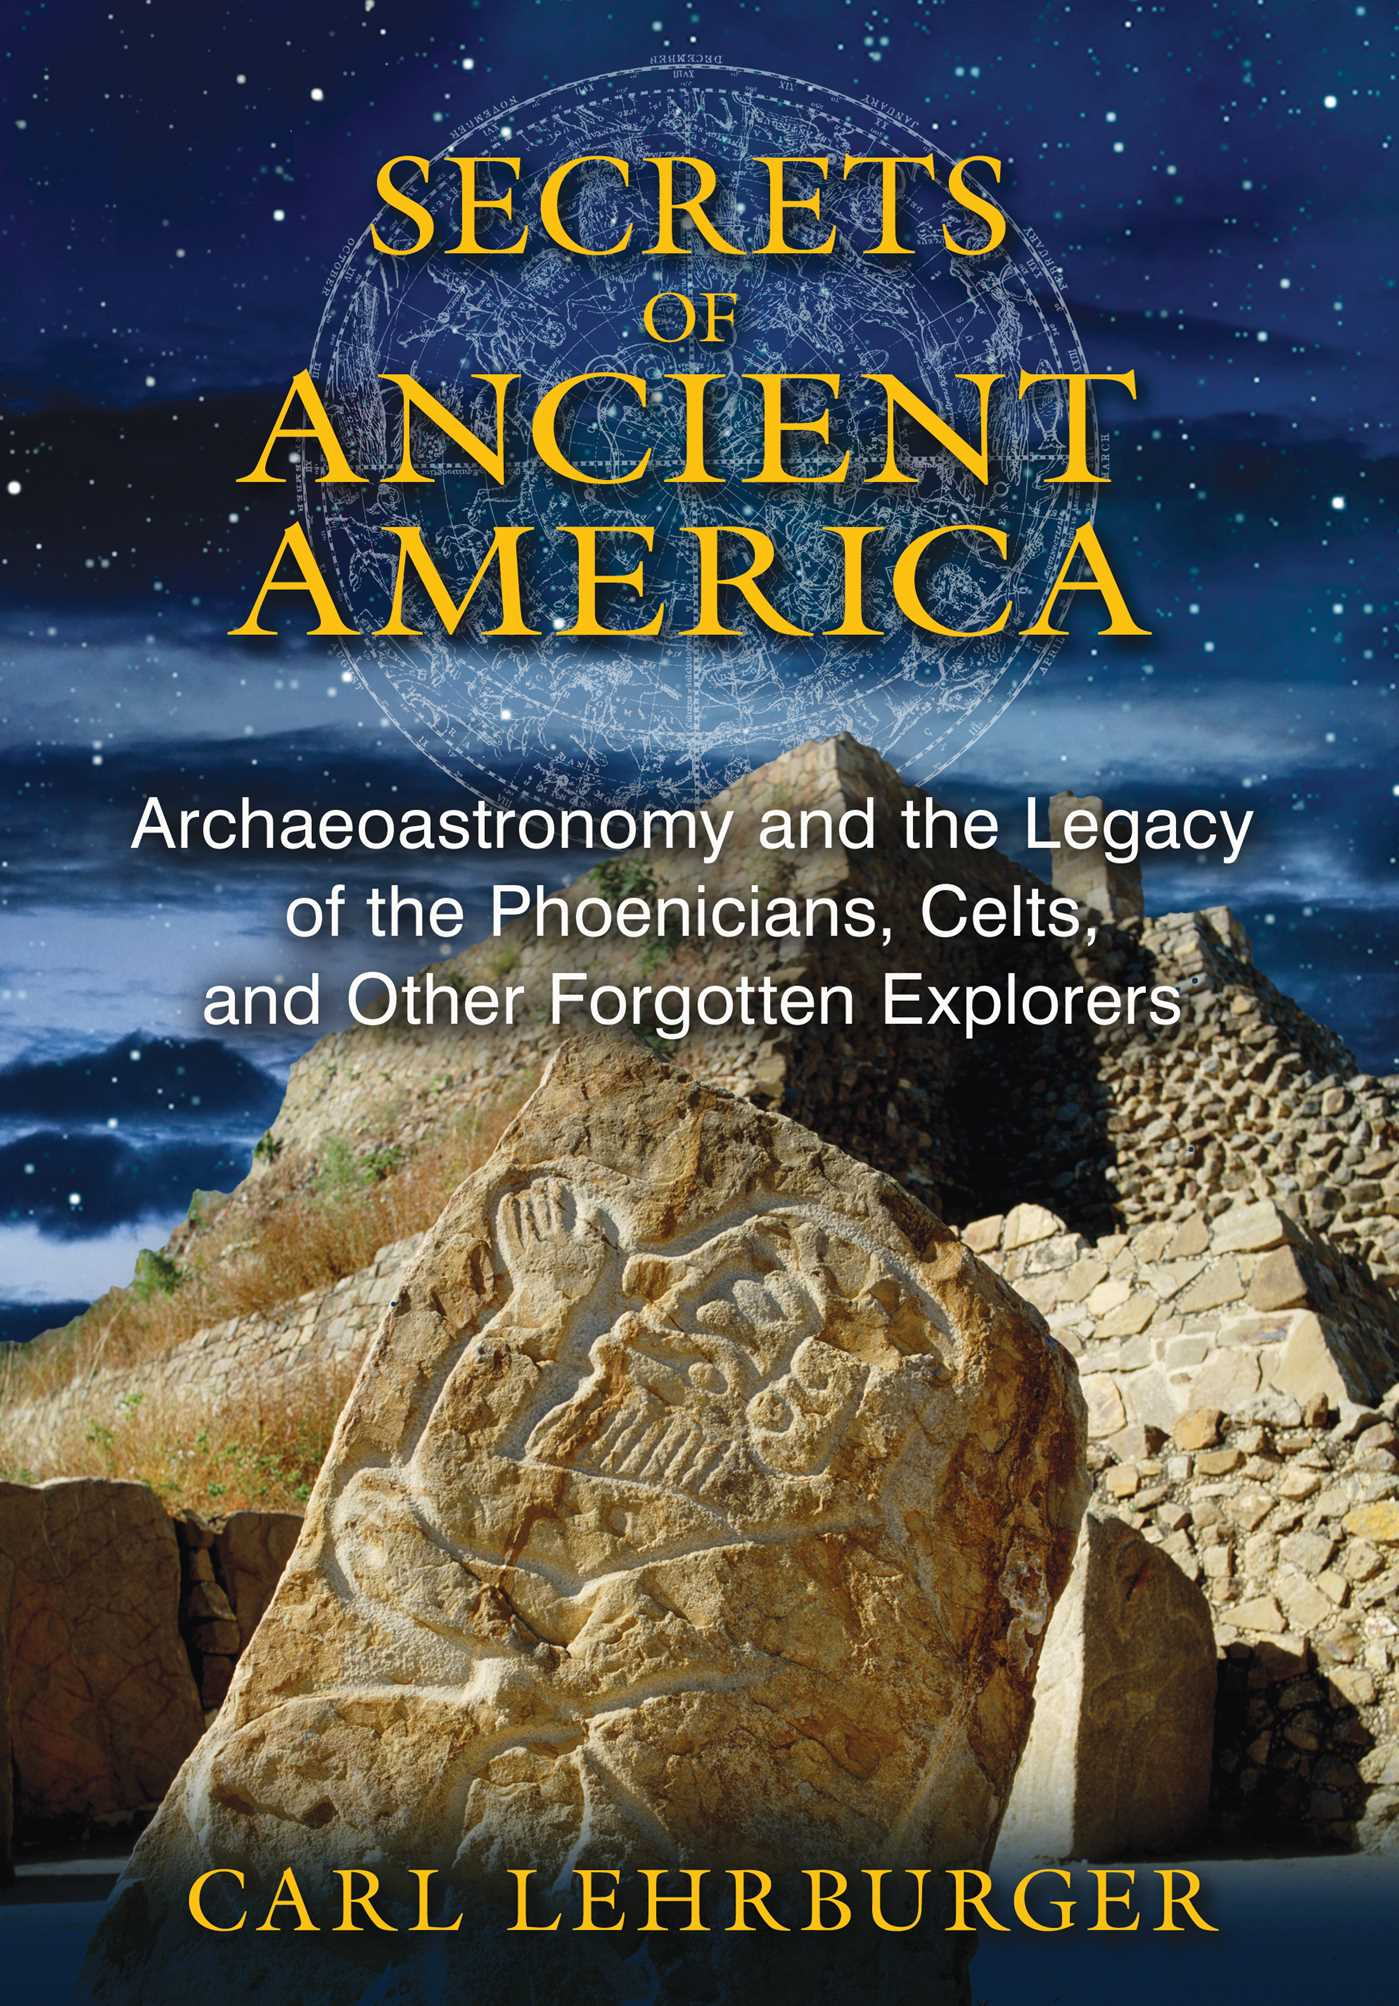 Secrets-of-ancient-america-9781591431930_hr